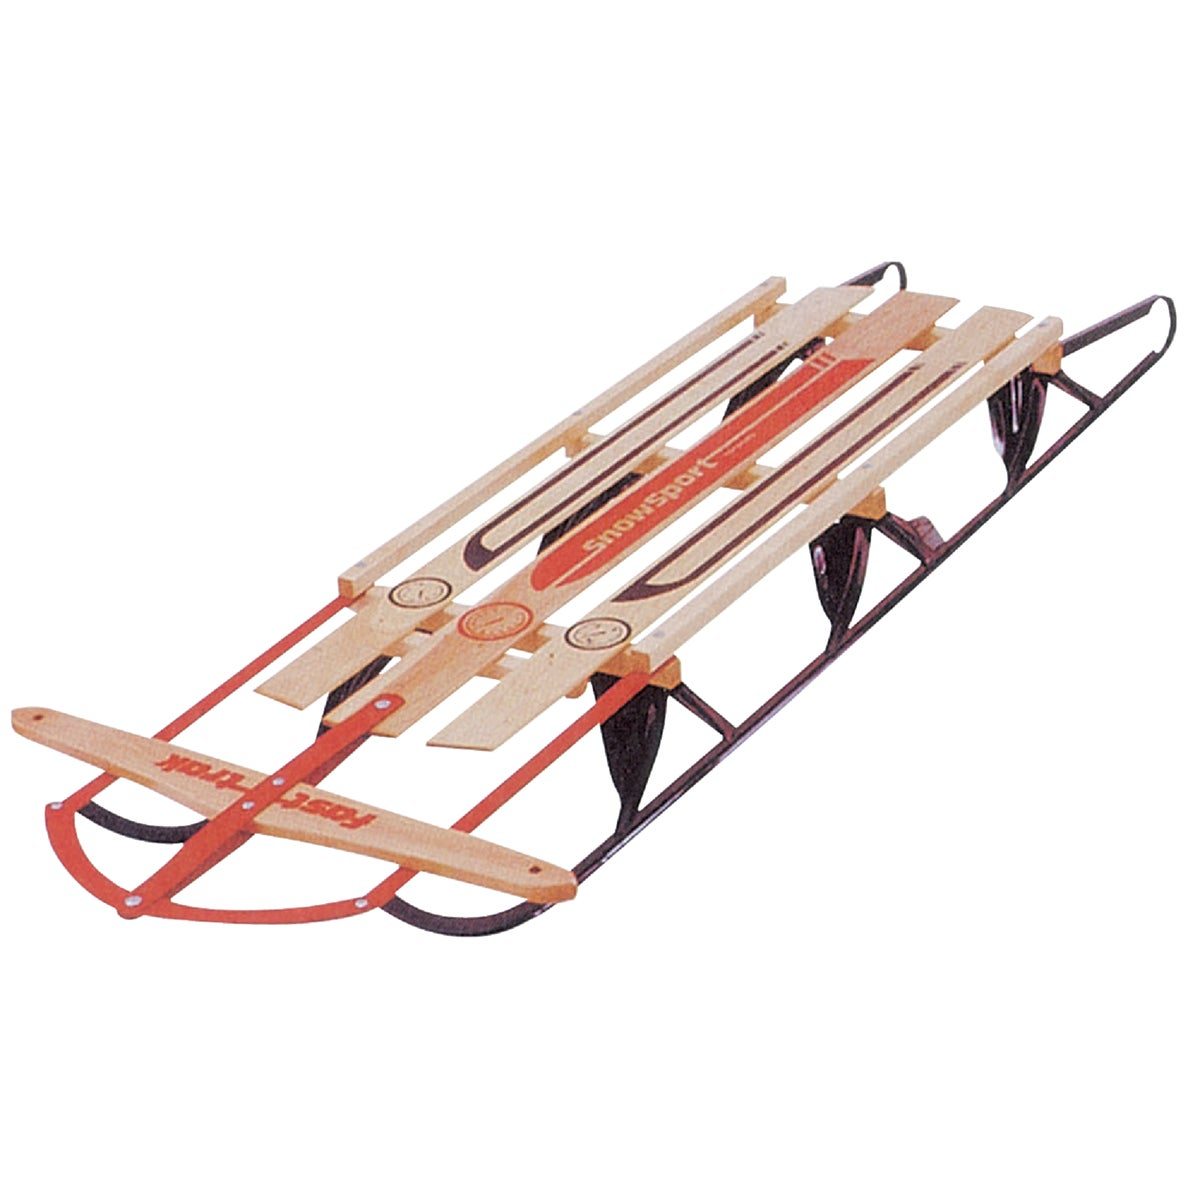 "60"" FLEXIBLE FLYER SLED"